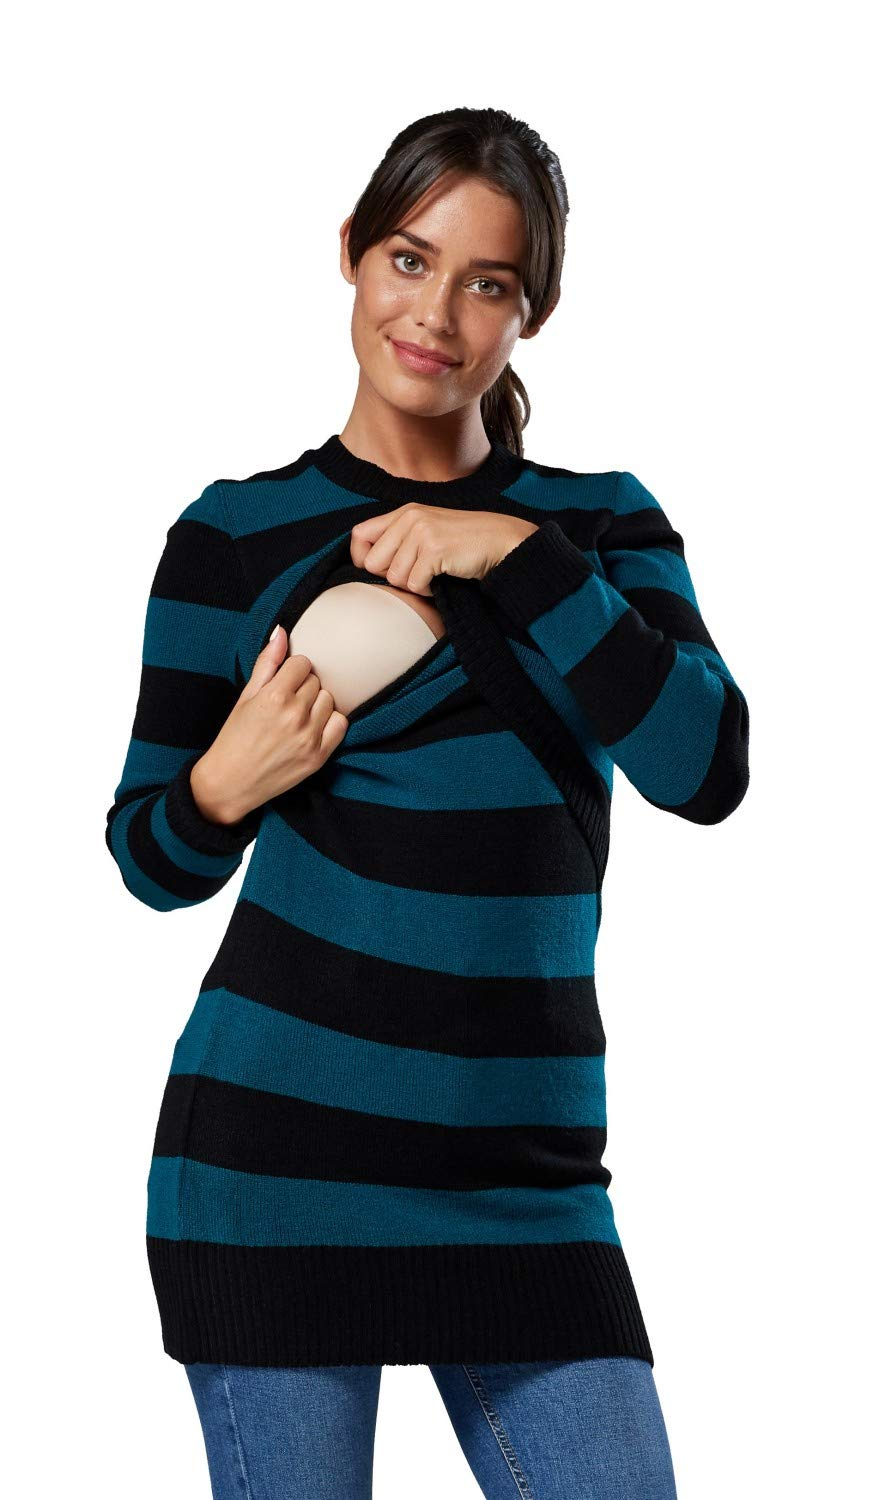 Happy Mama Womens Maternity Knitted Jumper Crew Neck 496p (Bottle Green, US 4/6, S/M)